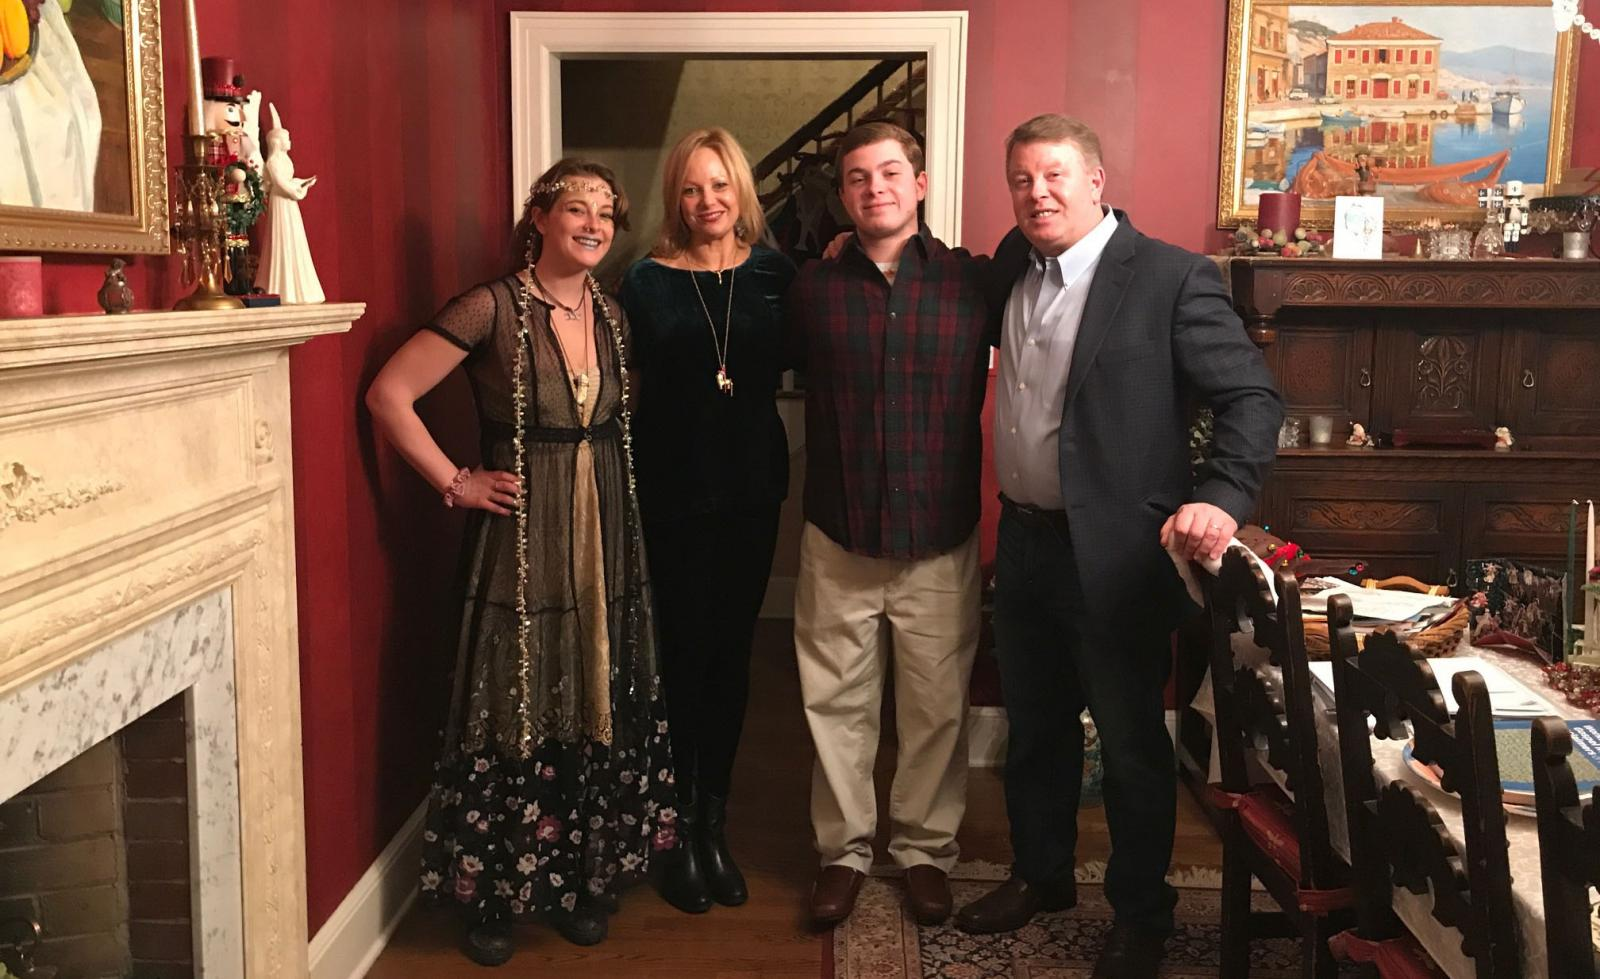 Claire, Rebekah, Paul Jr., and Paul Simpson standing together in their Ridgewood, New Jersey home.